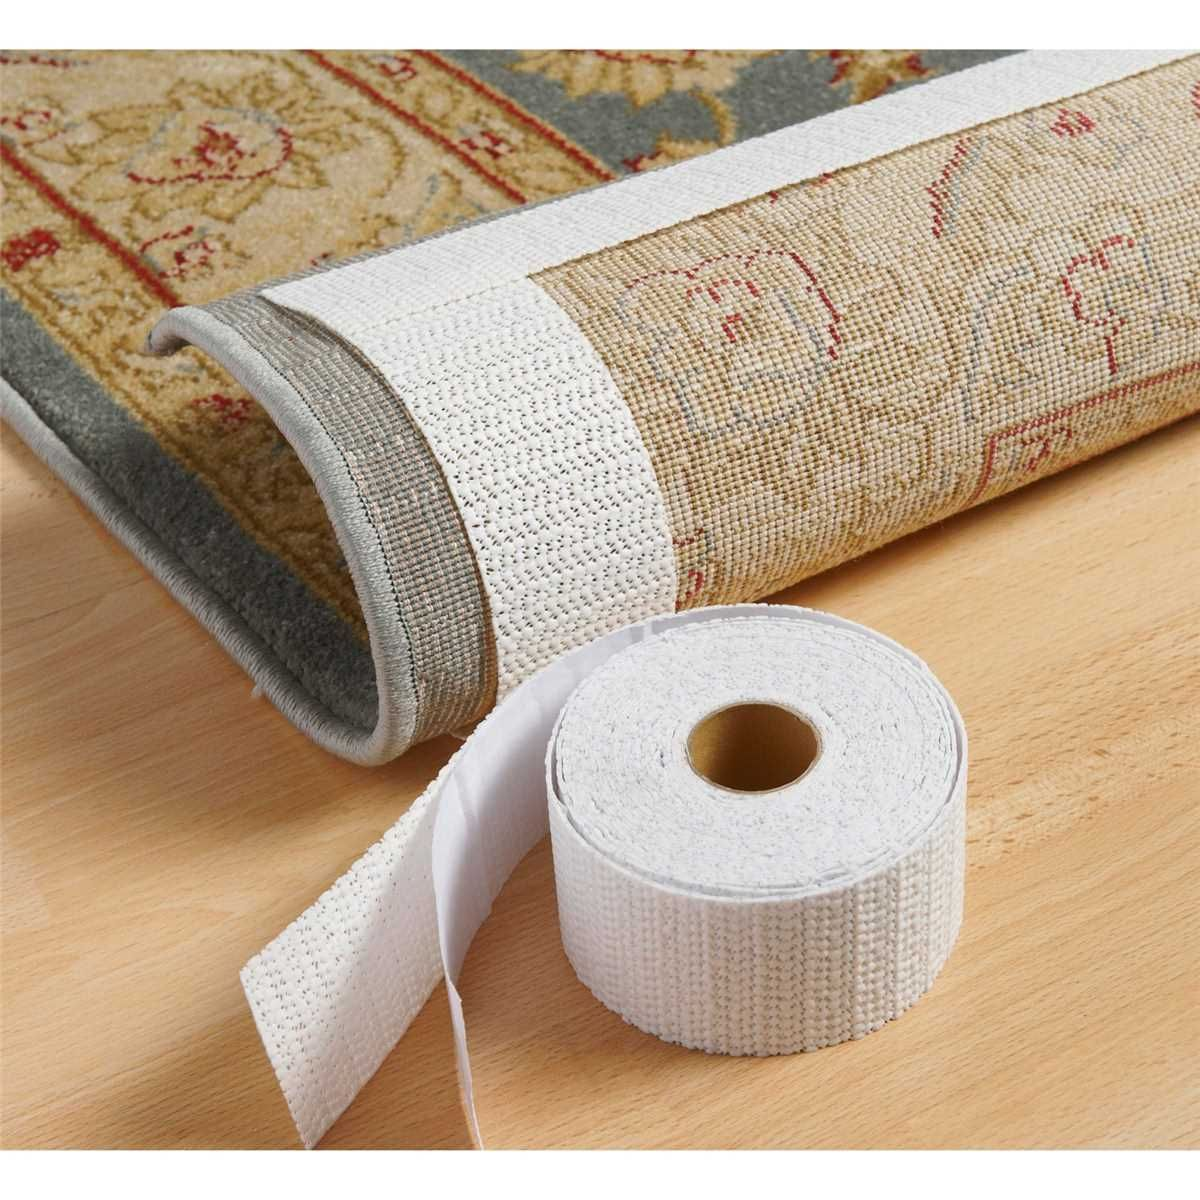 Rug Gripper Tape Stop Runners And